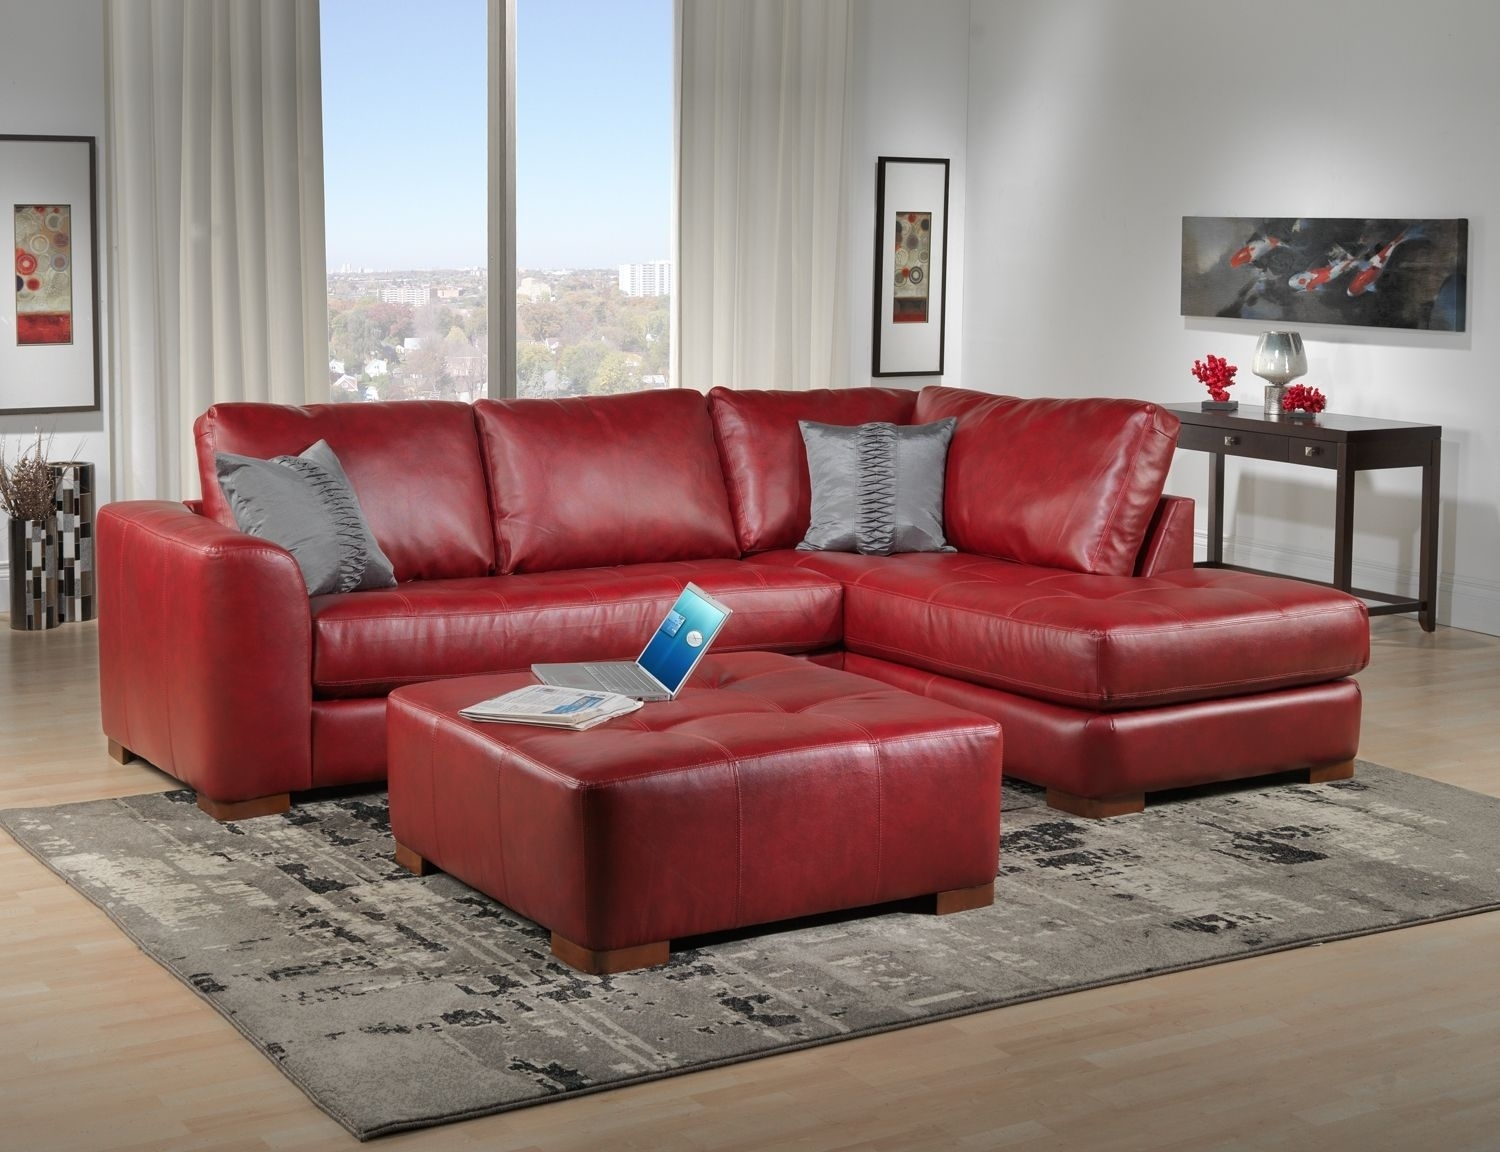 I Want A Red Leather Couch. | Humble Abode | Pinterest | Red Leather regarding Red Leather Couches (Image 5 of 15)